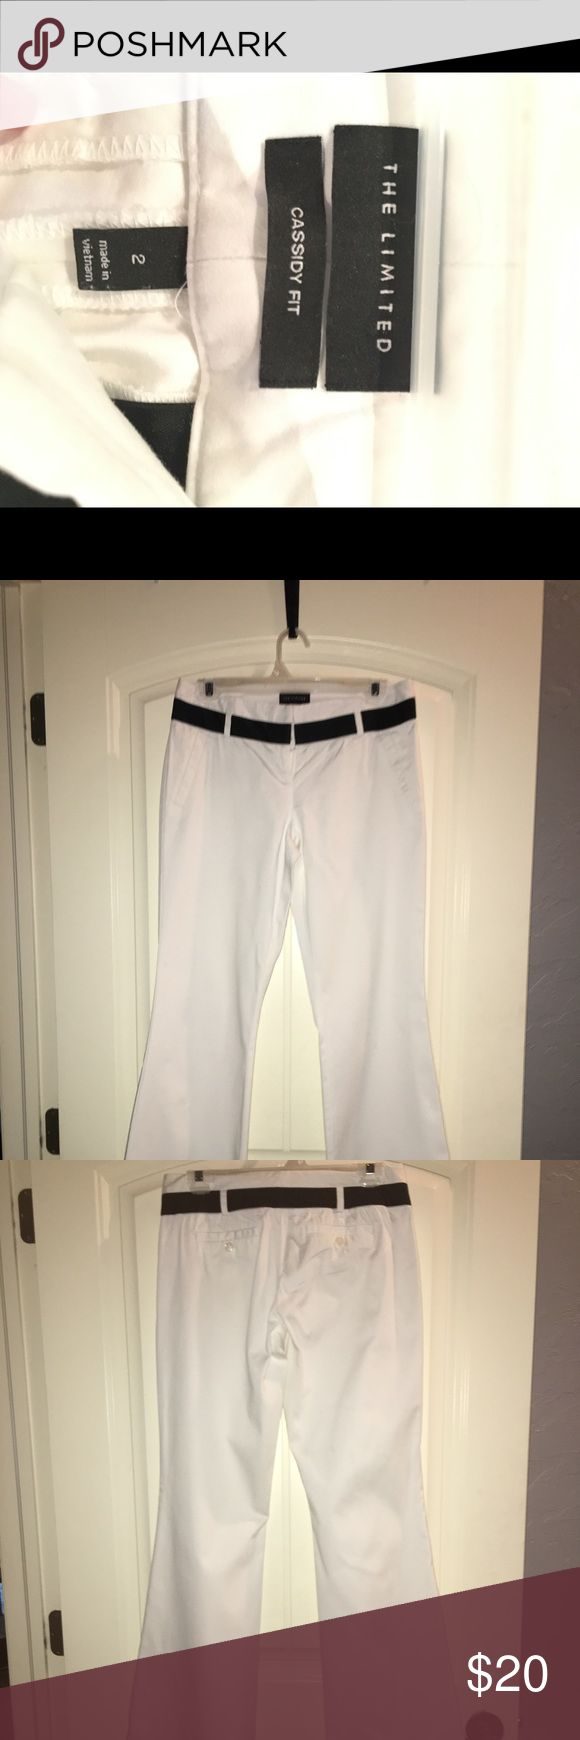 Express Pants Size 2 White Express Pants.  2 Very small stain near the hem of one of thepant legs. May come out with washing or dry cleaning. Express Pants Straight Leg